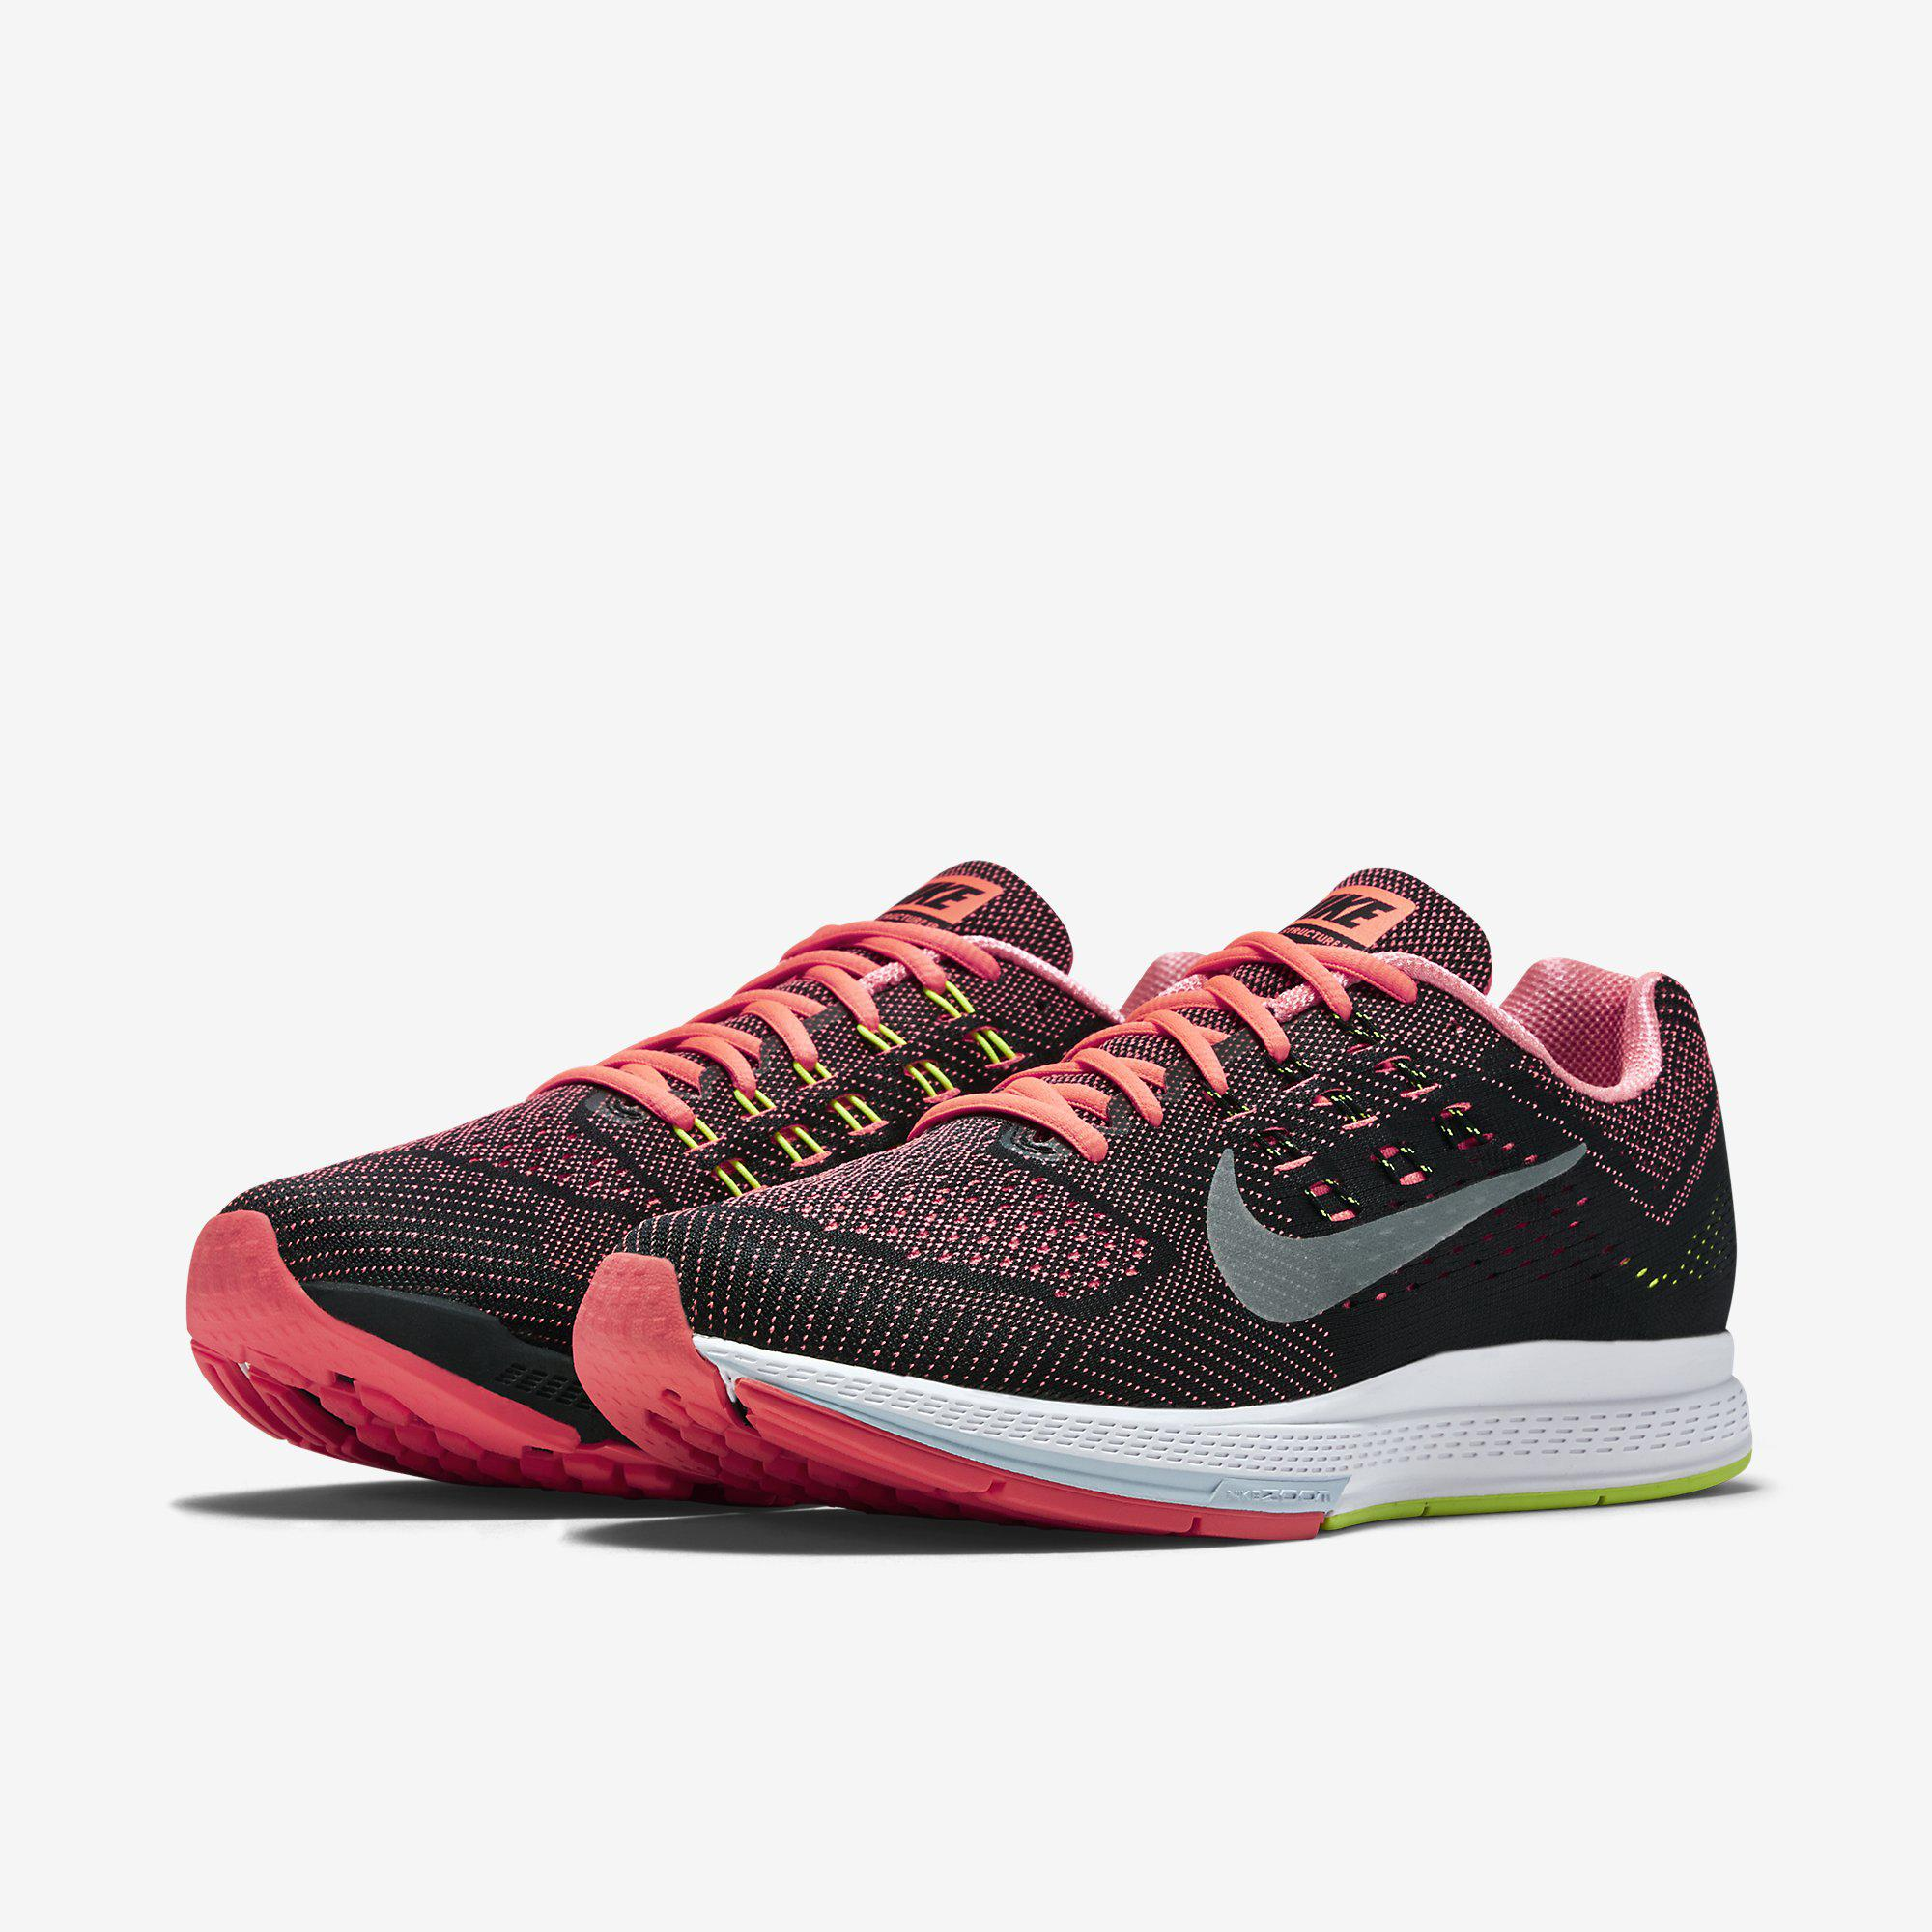 new style 5dfd5 25d48 Nike Mens Air Zoom Structure 18 Running Shoes - Hot Lava Black